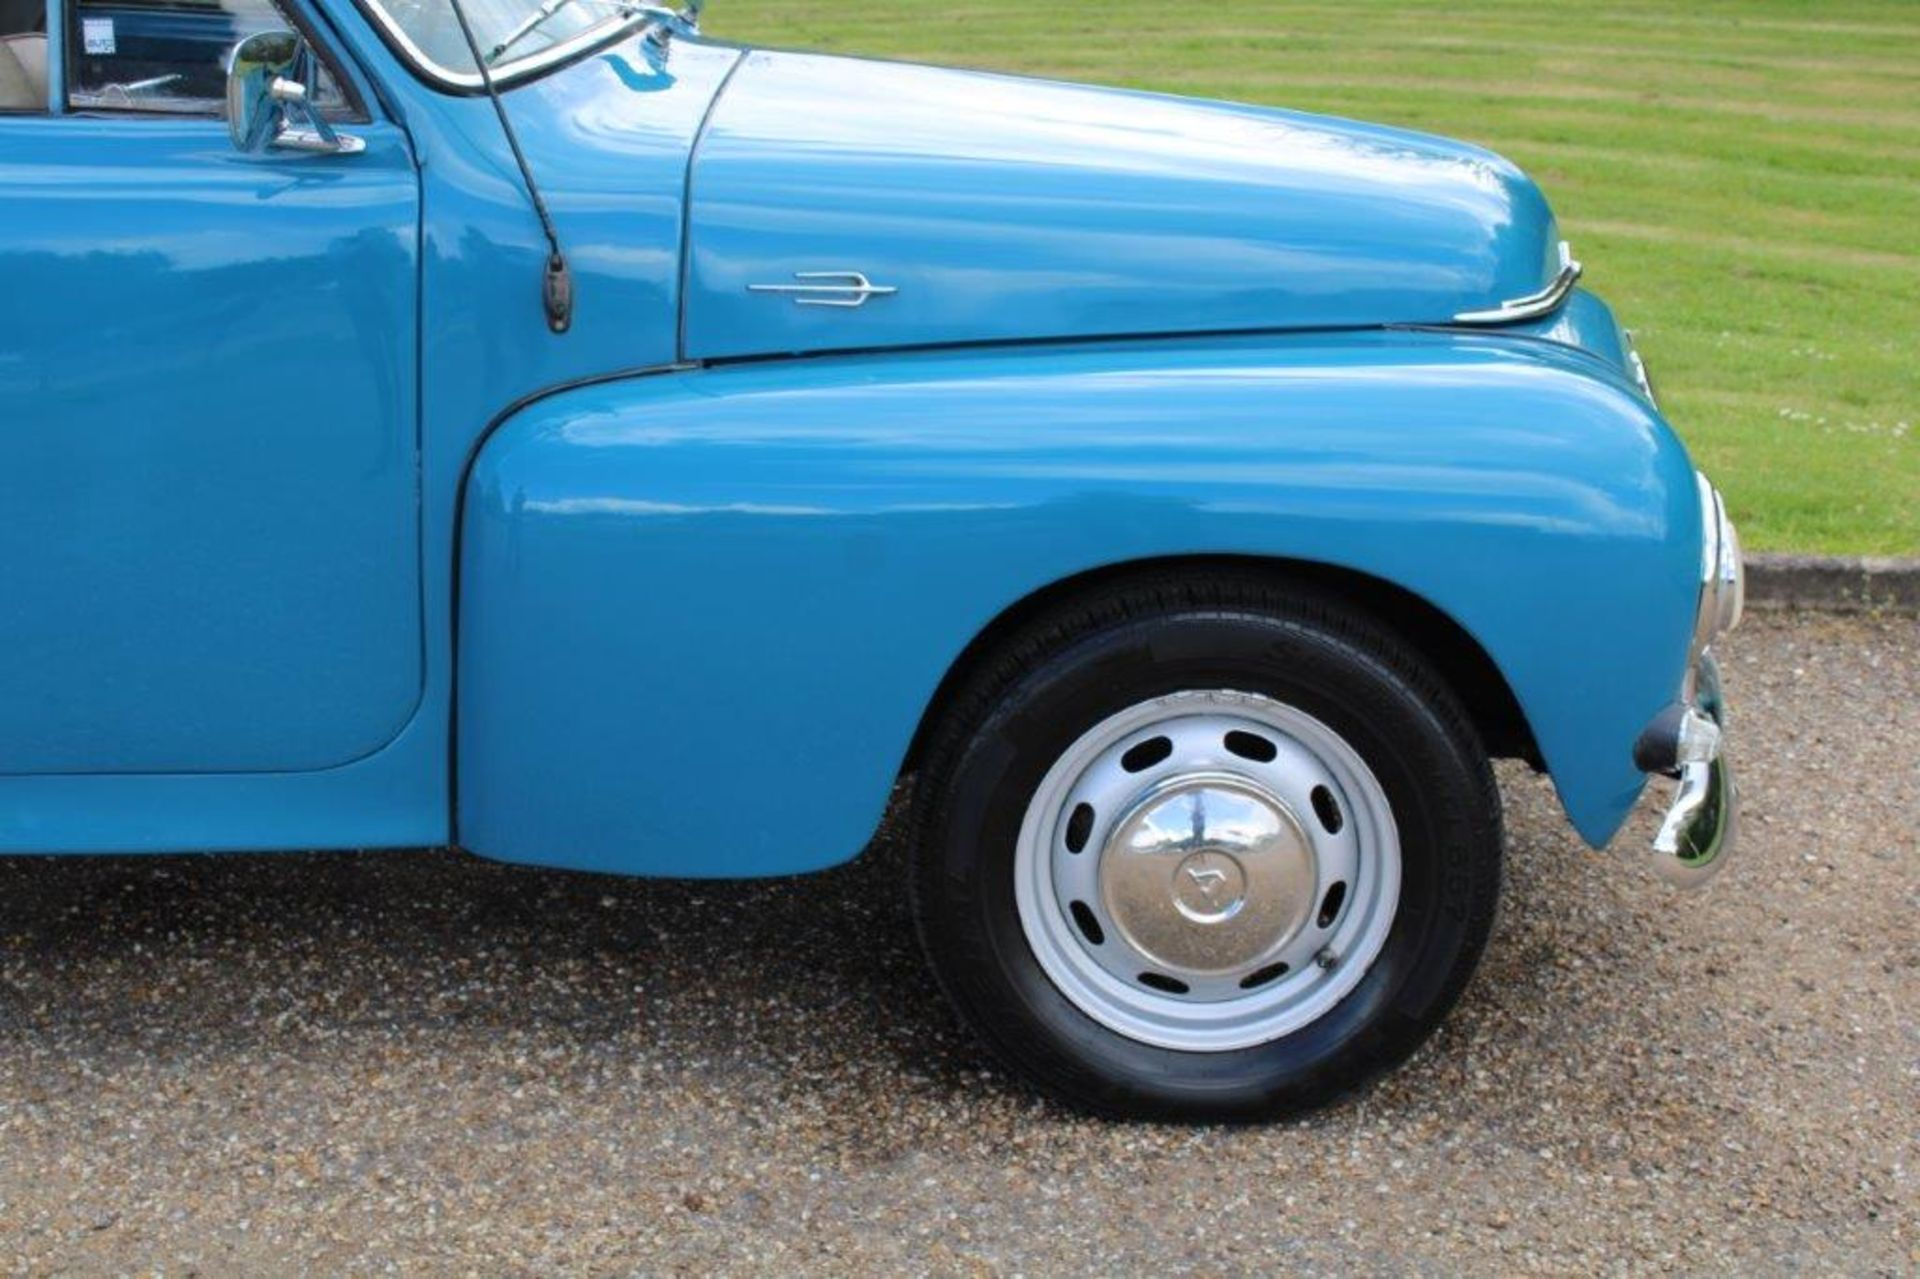 1961 Volvo P 21114 A Pick-Up LHD - Image 4 of 25